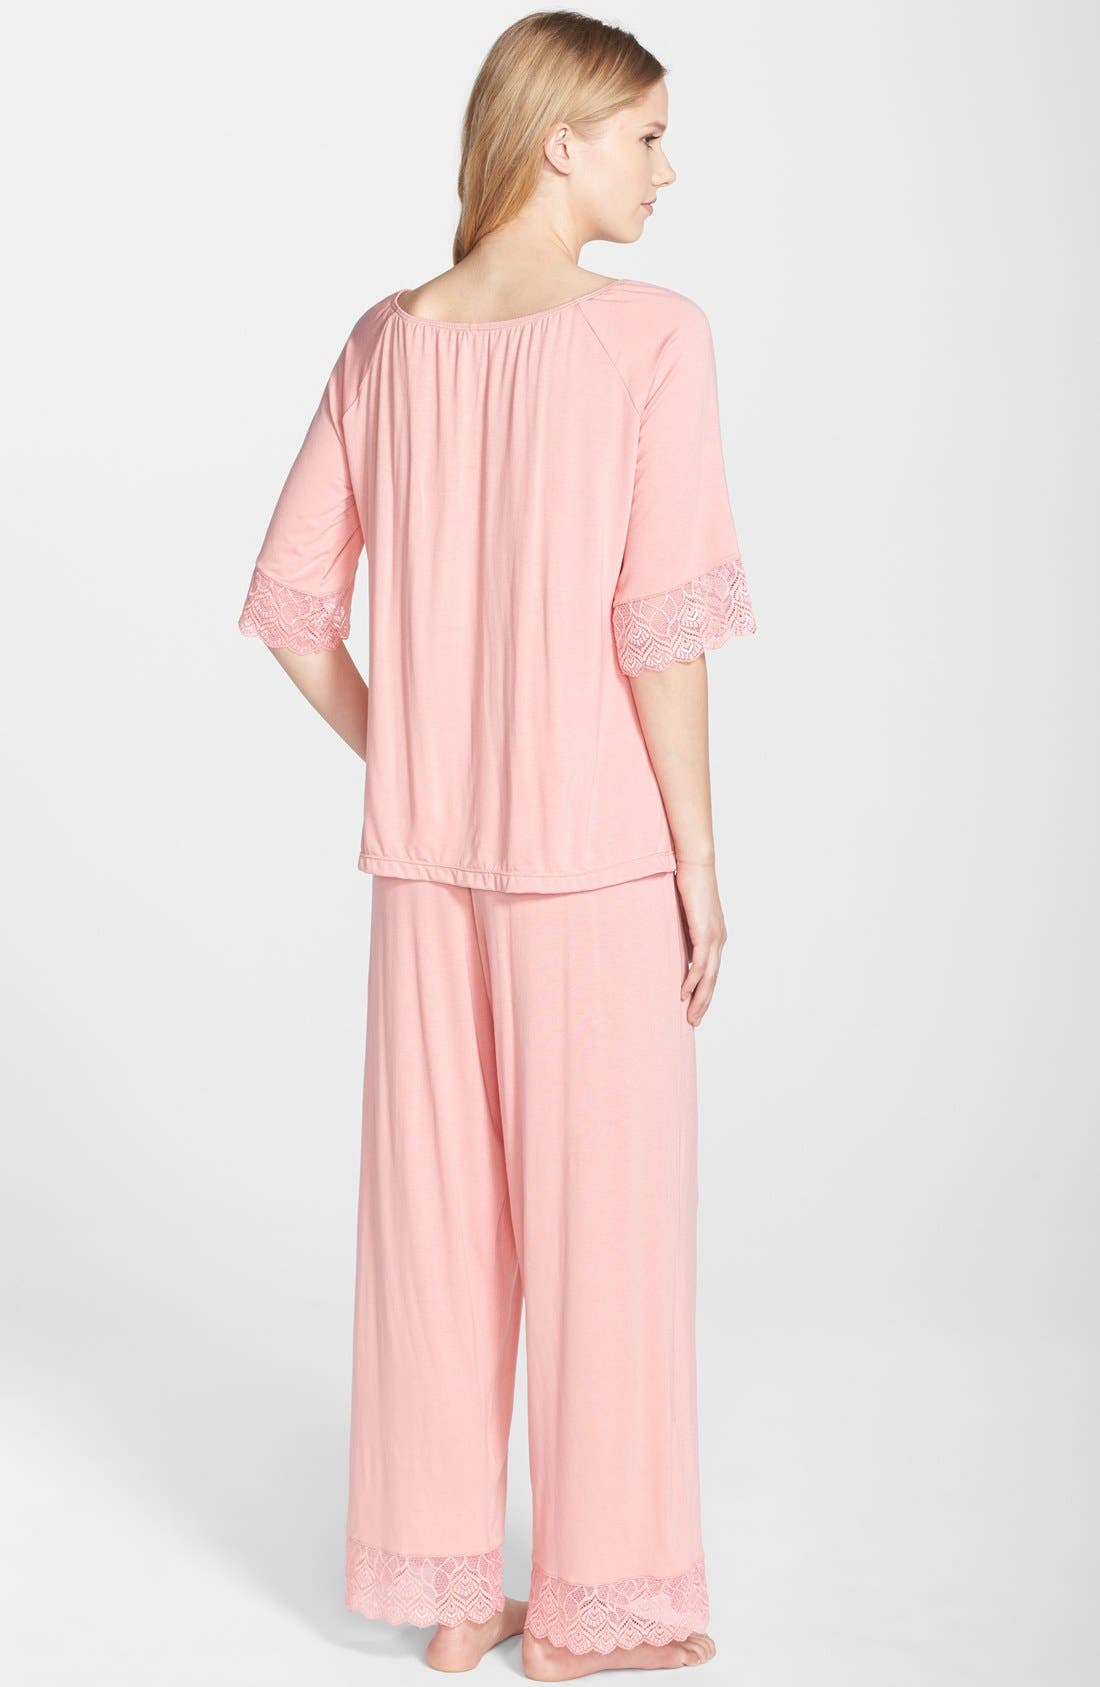 Alternate Image 3  - Belabumbum 'Tallulah' Maternity Tunic & Pants